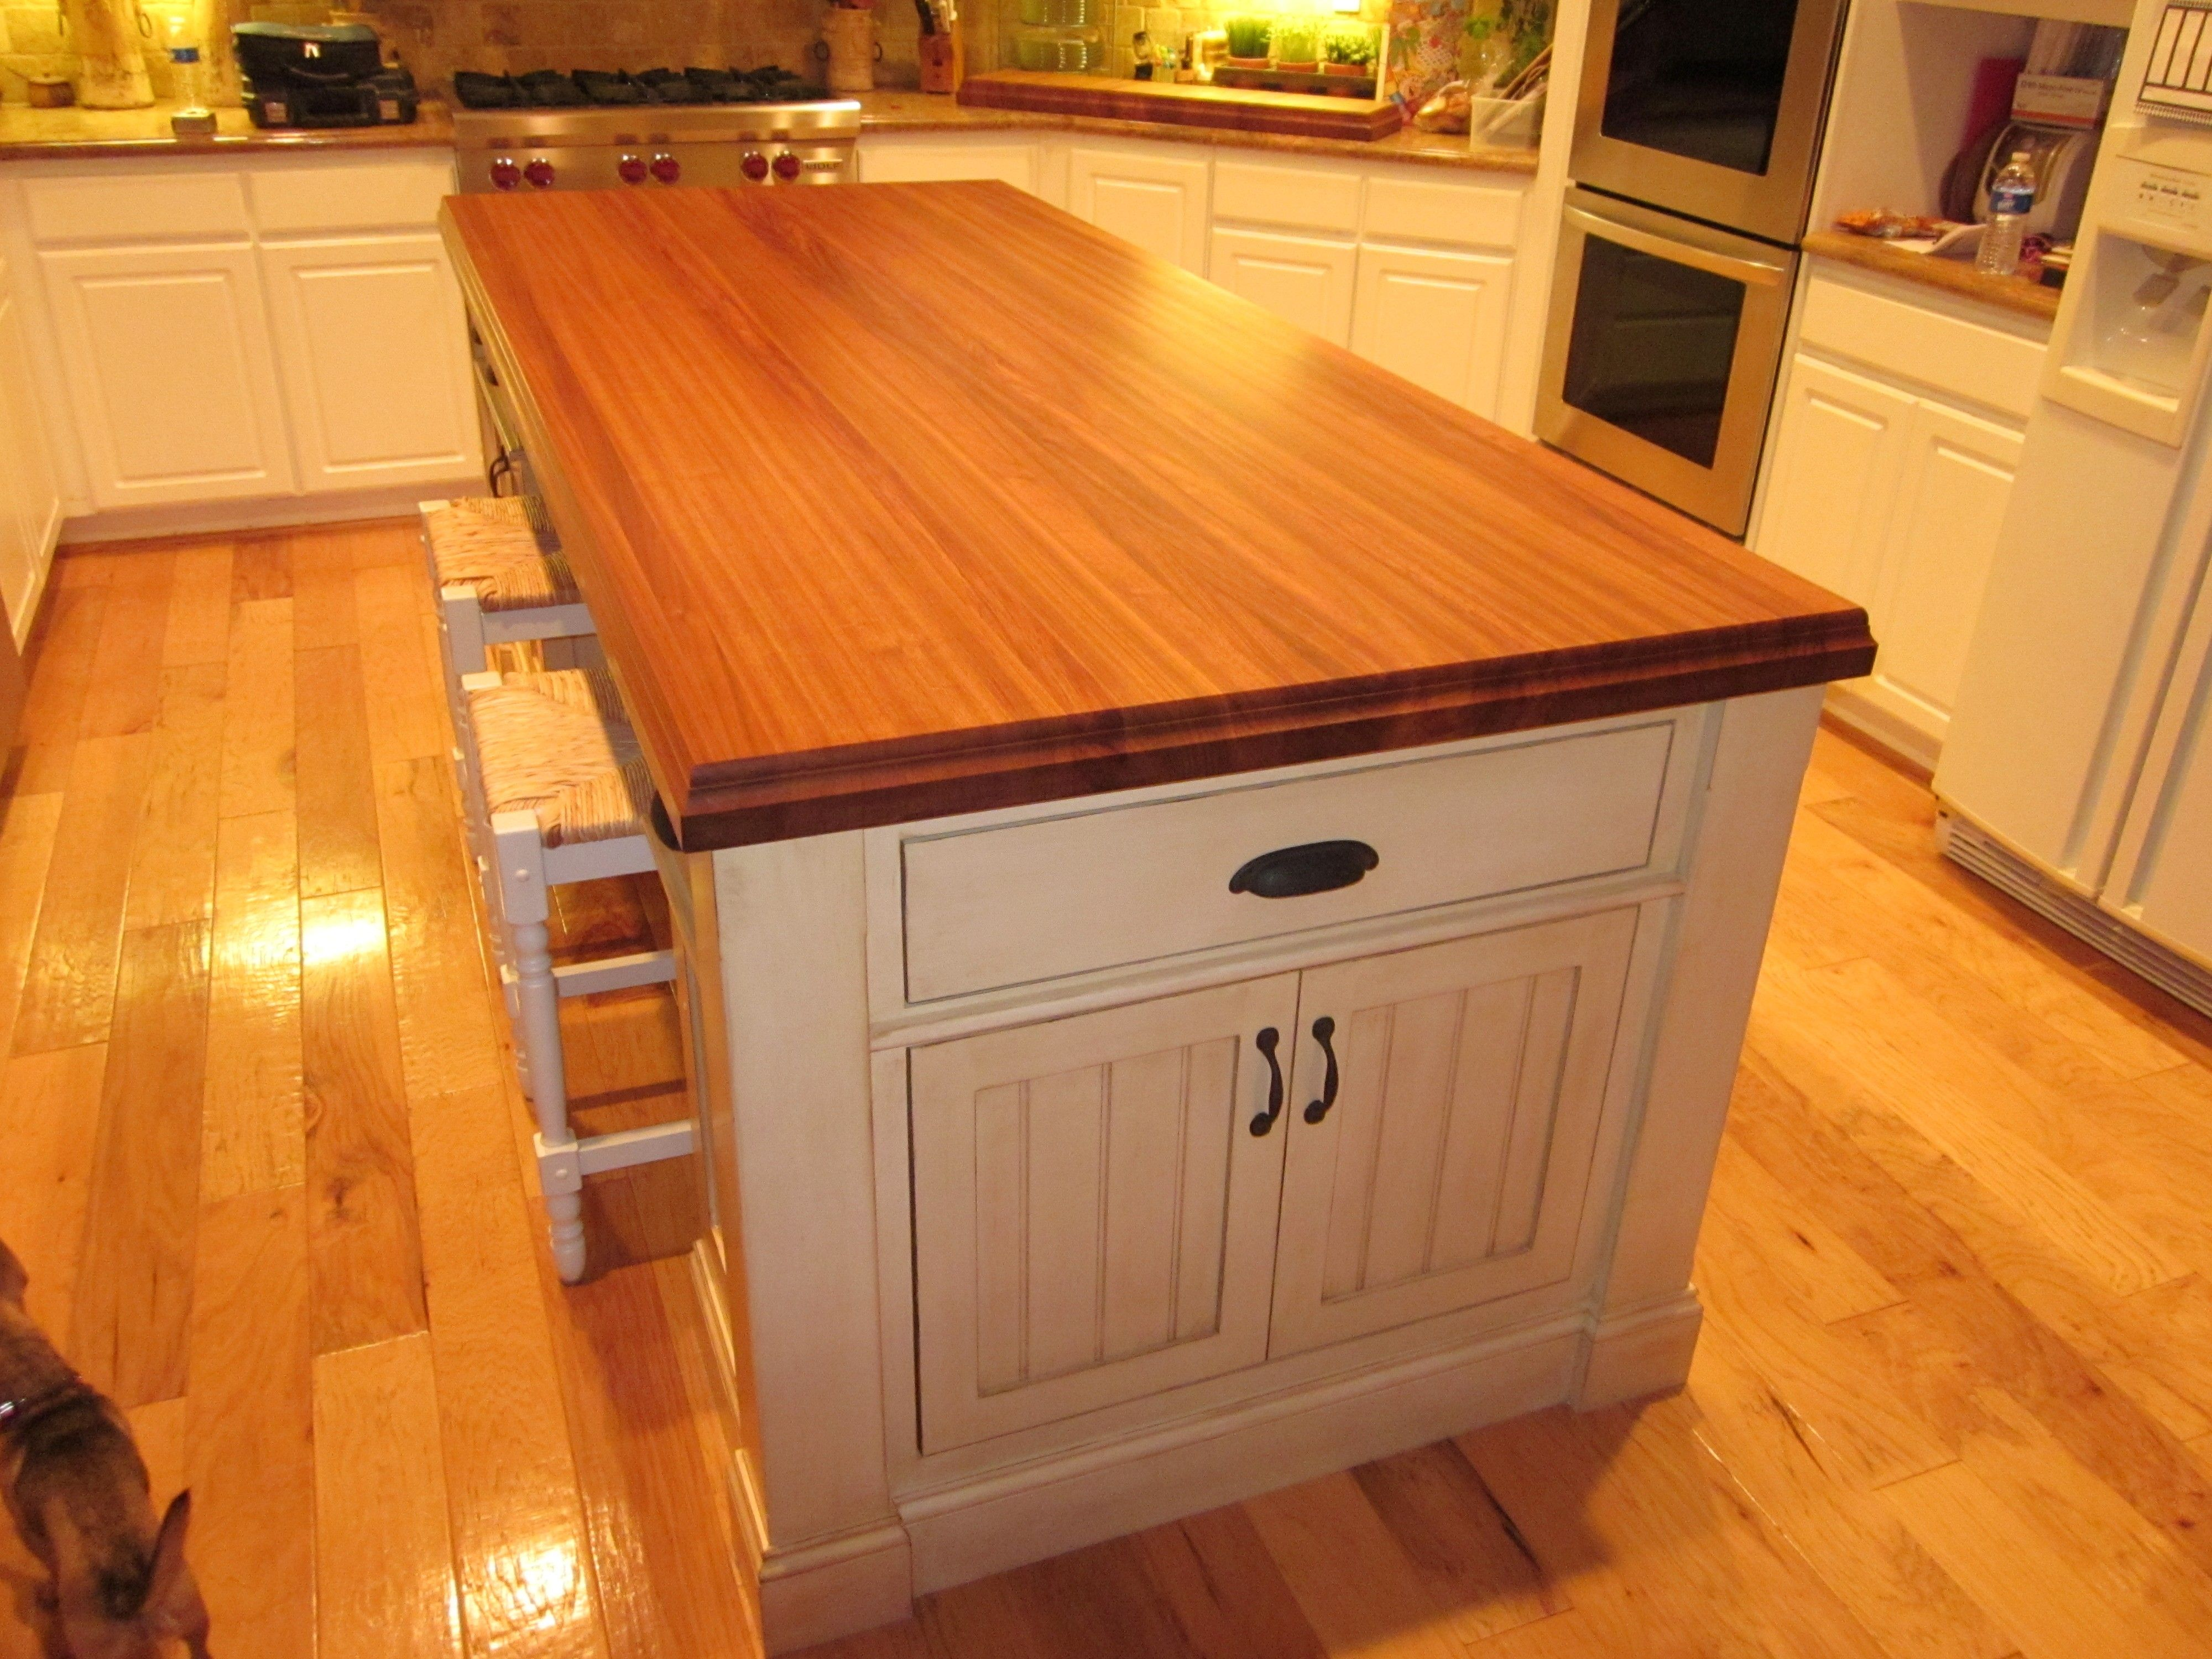 Kitchen Island Top Ideas decorating: detail pictures butcher block kitchen island design